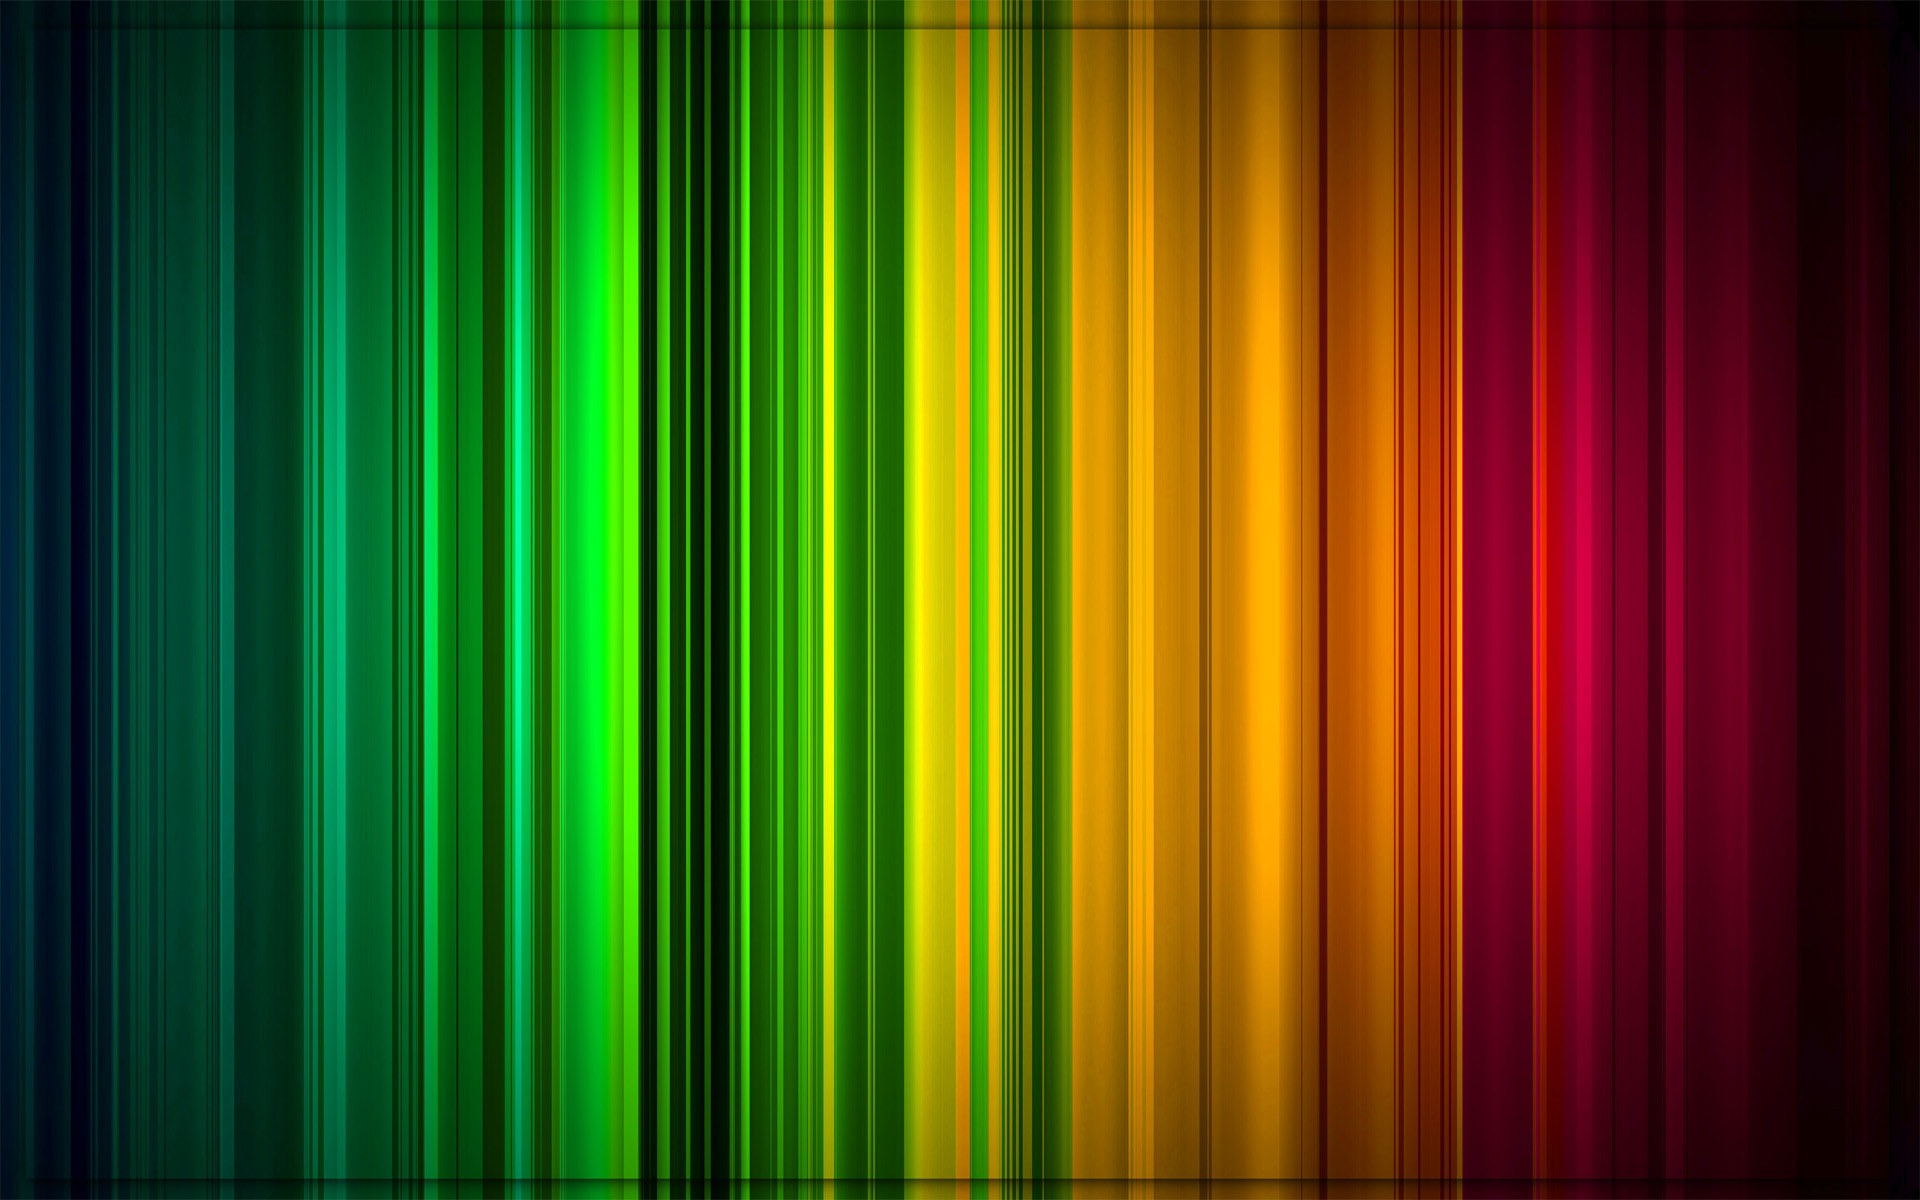 colour spectrum abstract background - photo #22